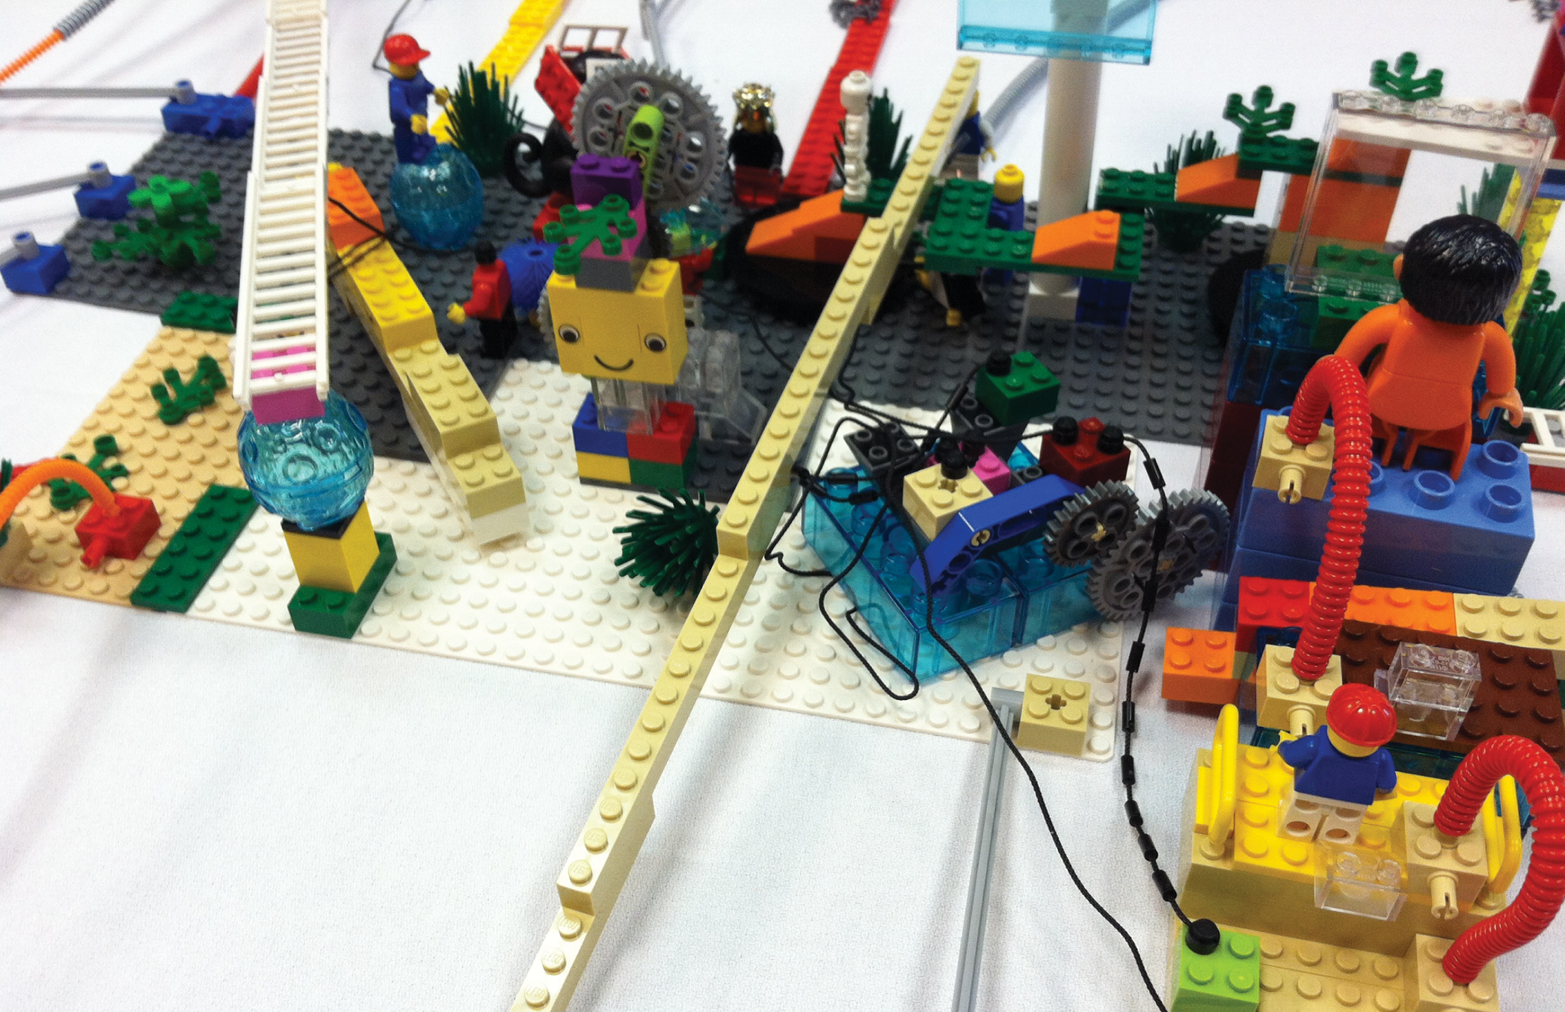 Legos showing interconnections and relationships